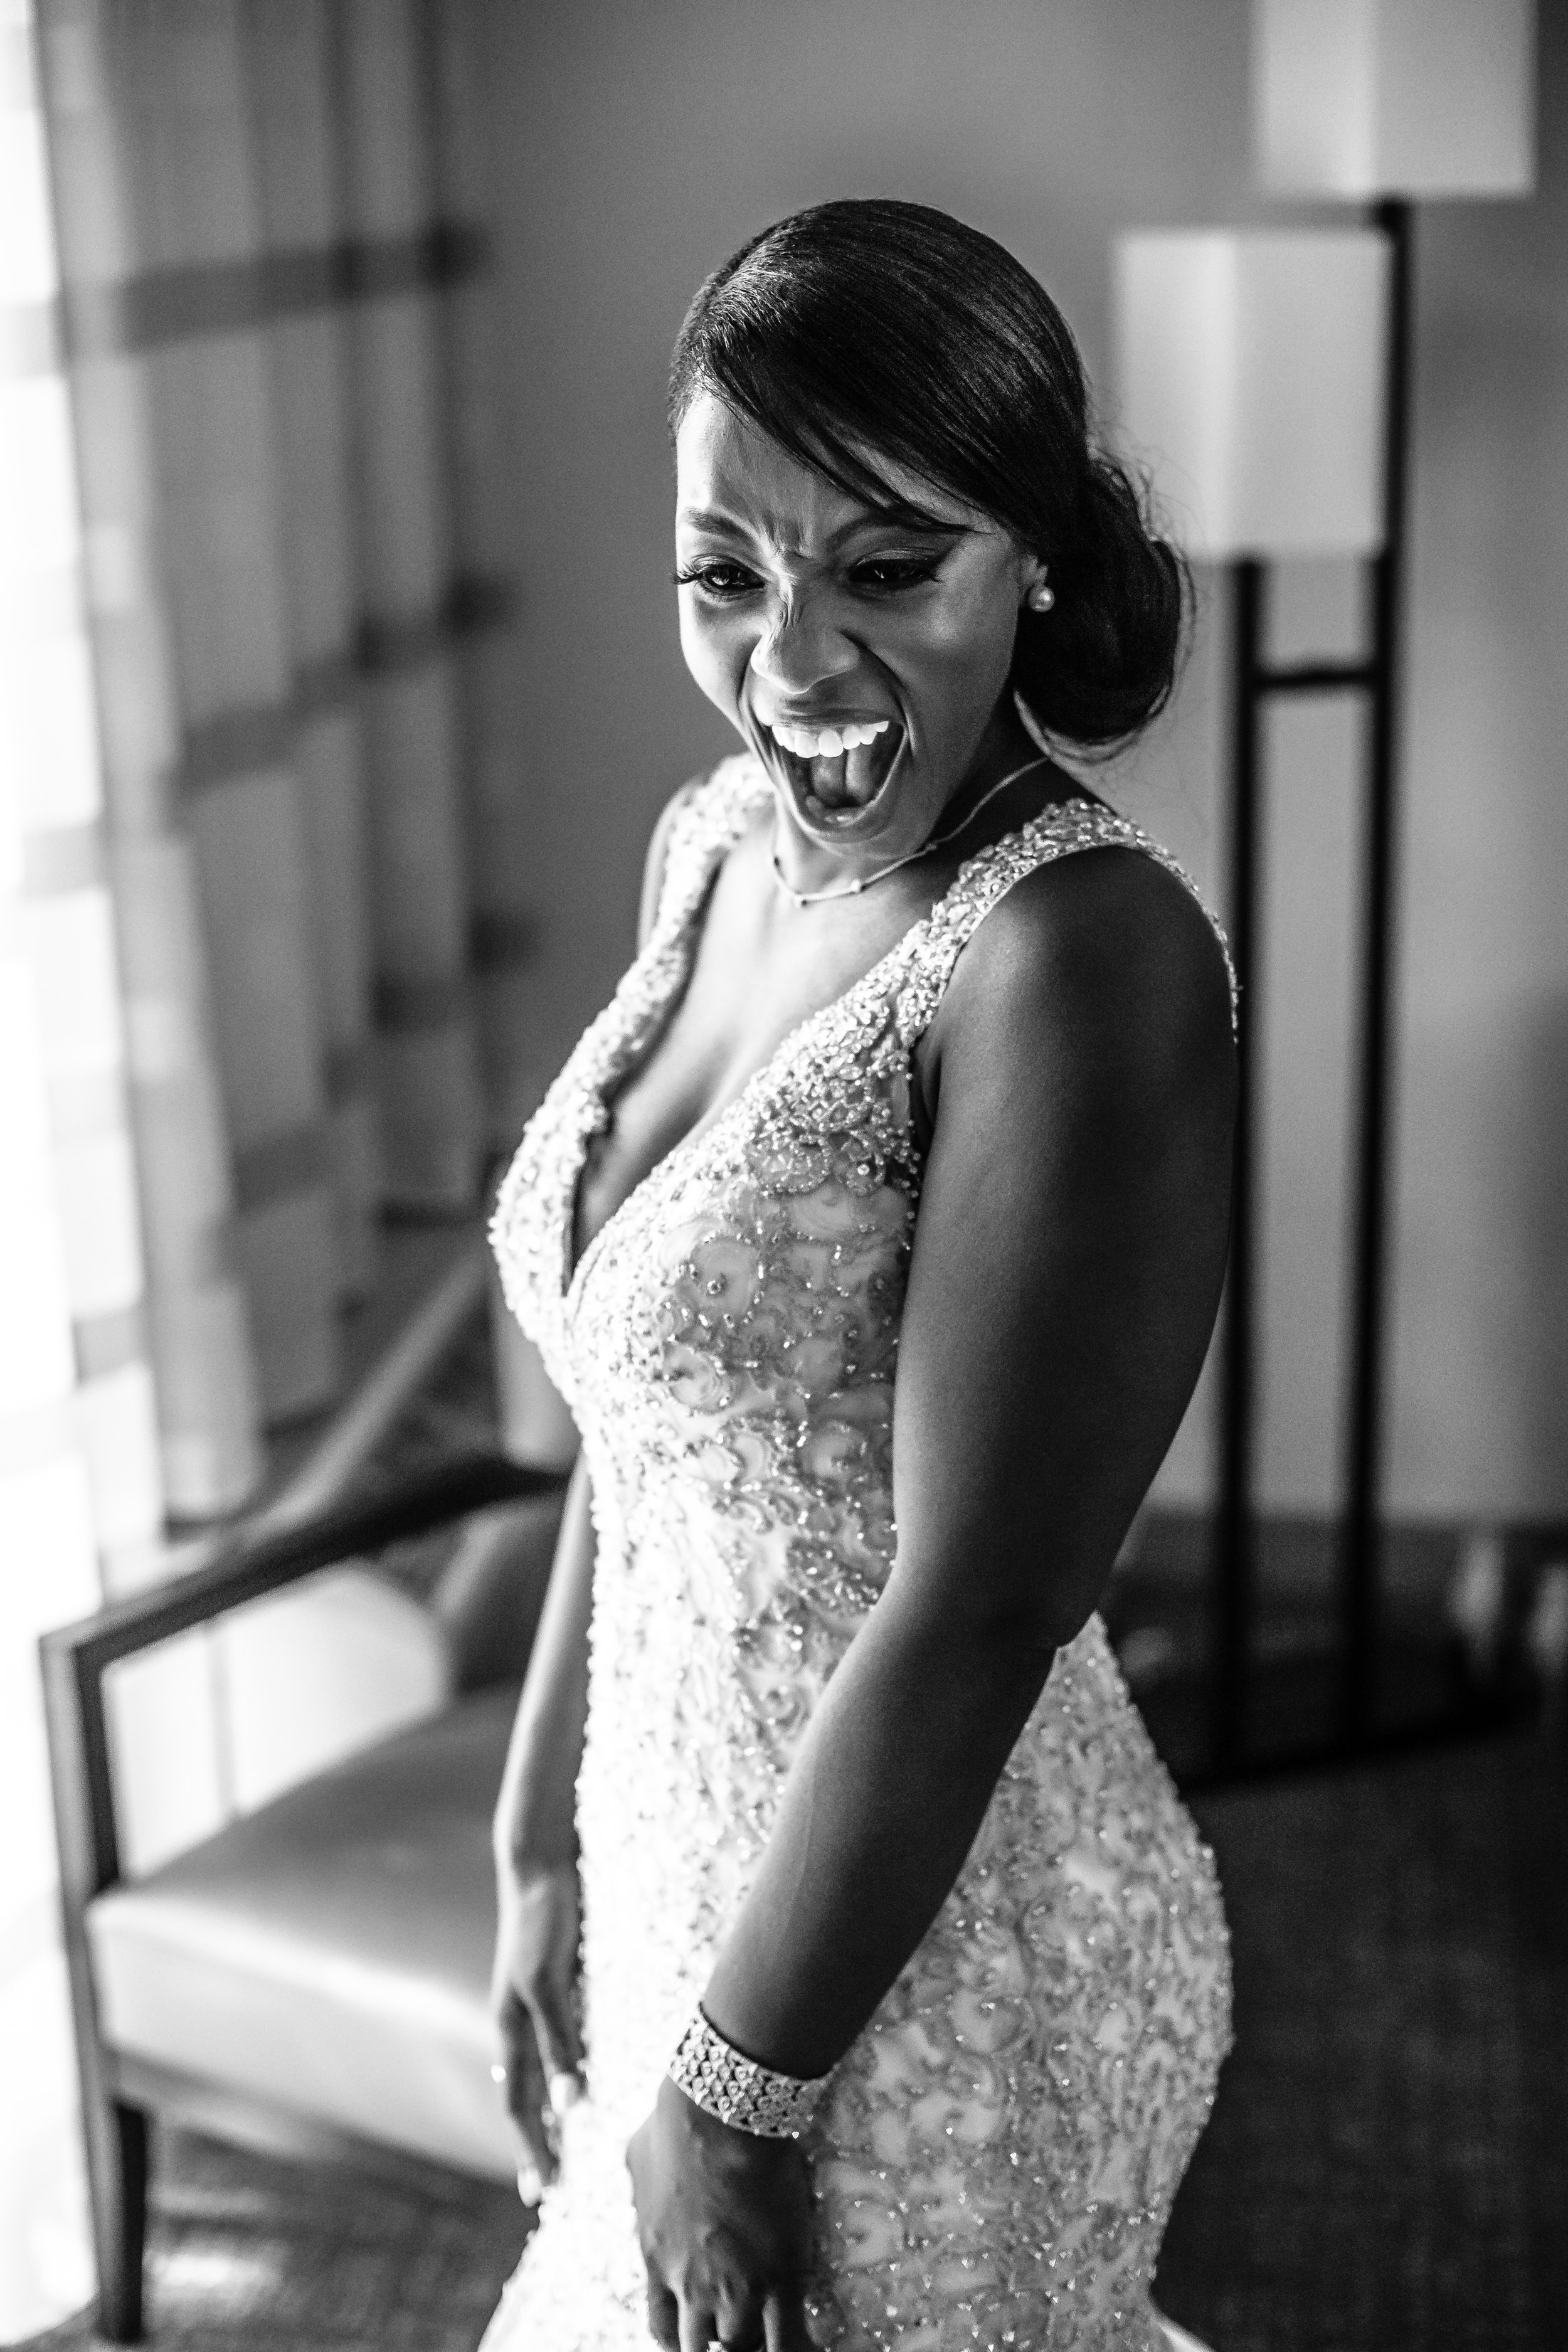 excited bride seeing her self in the mirror